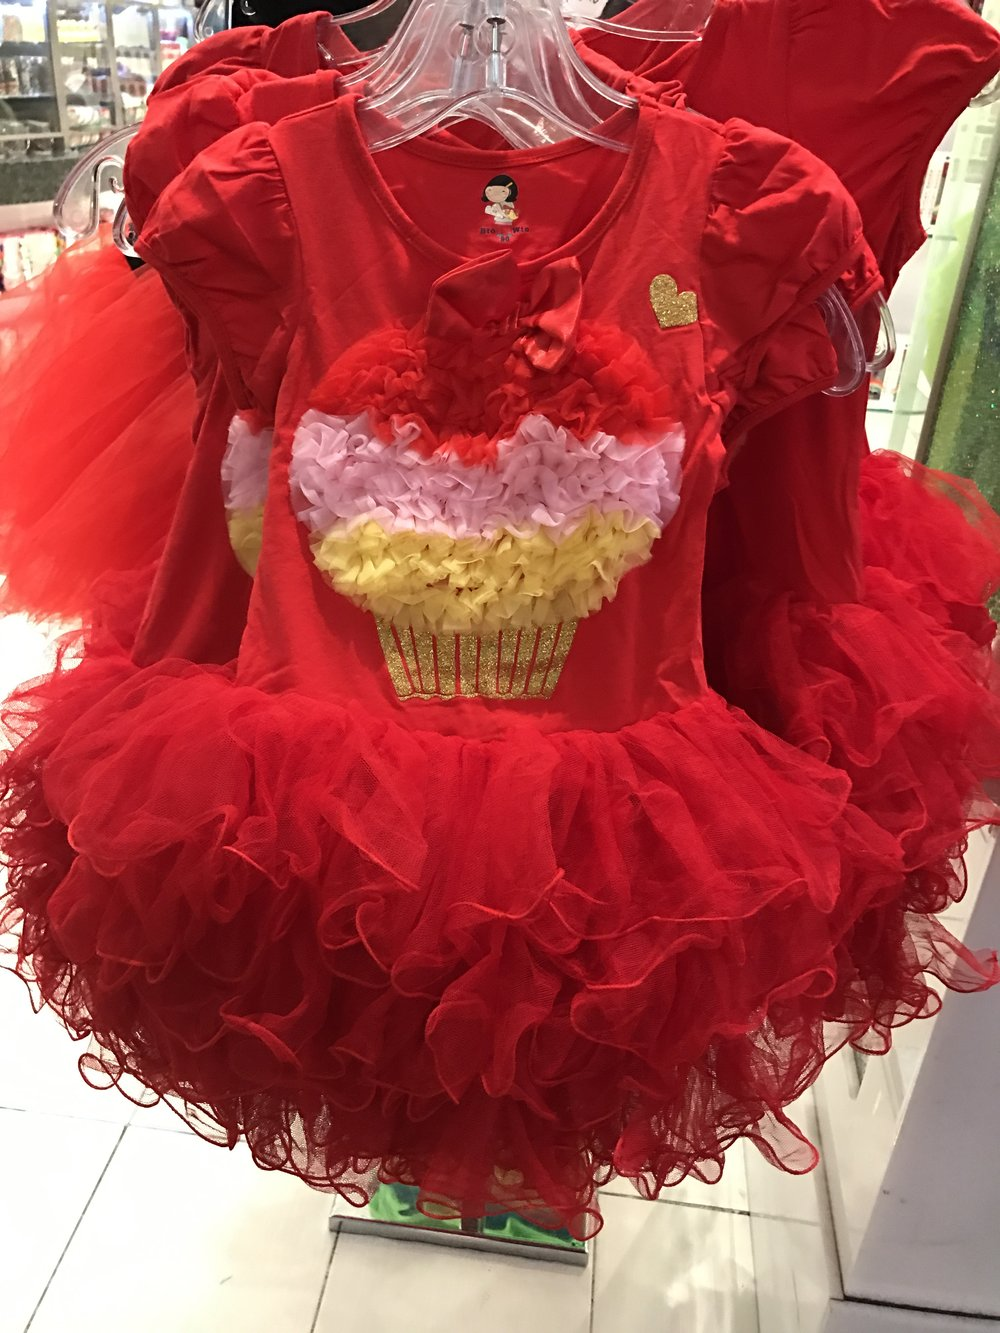 Ice Cream Tutu - Sugar Factory Planet Hollywood - Wandering Jokas Travel & Ice Cream Blog